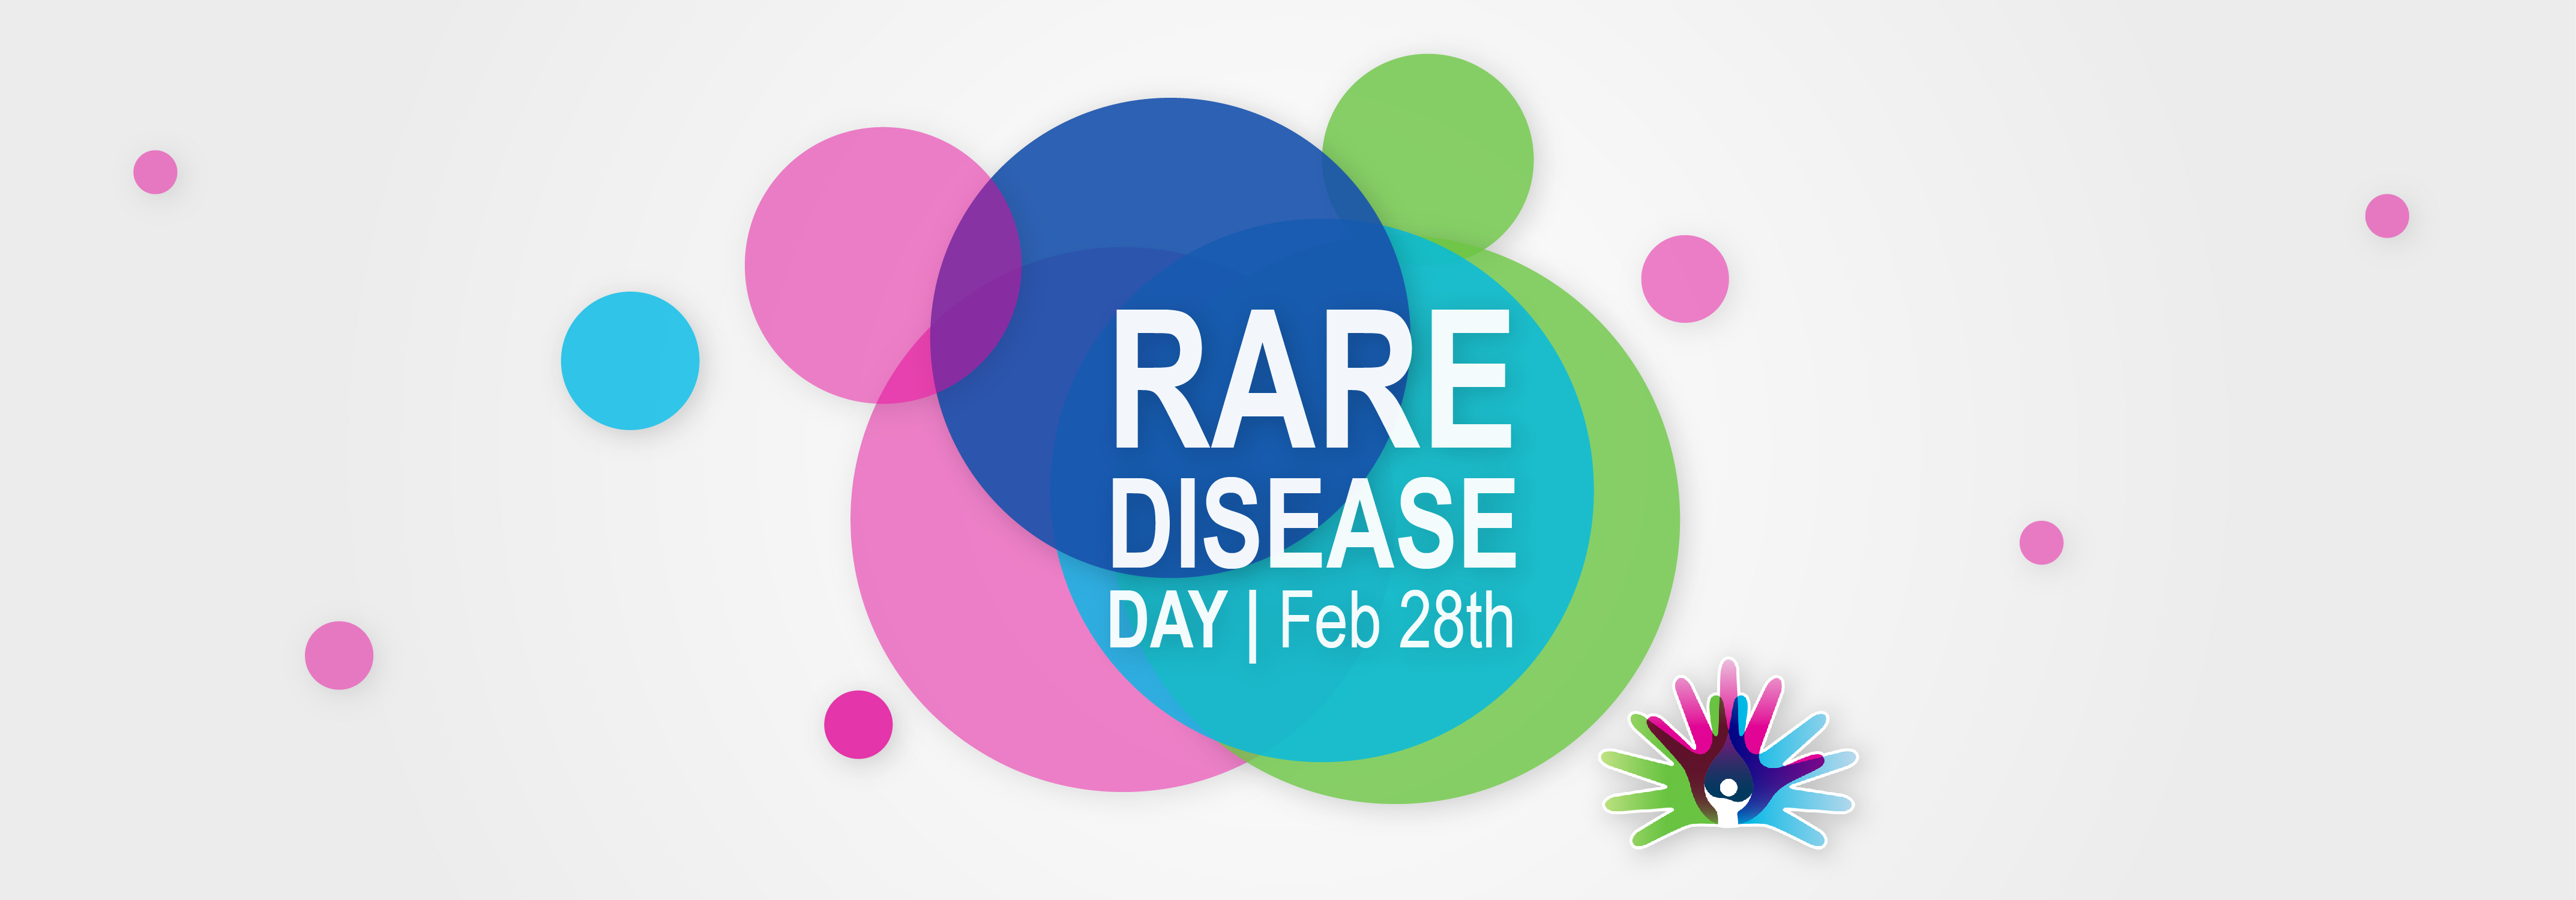 20180223_Rare-Disease-Day_header